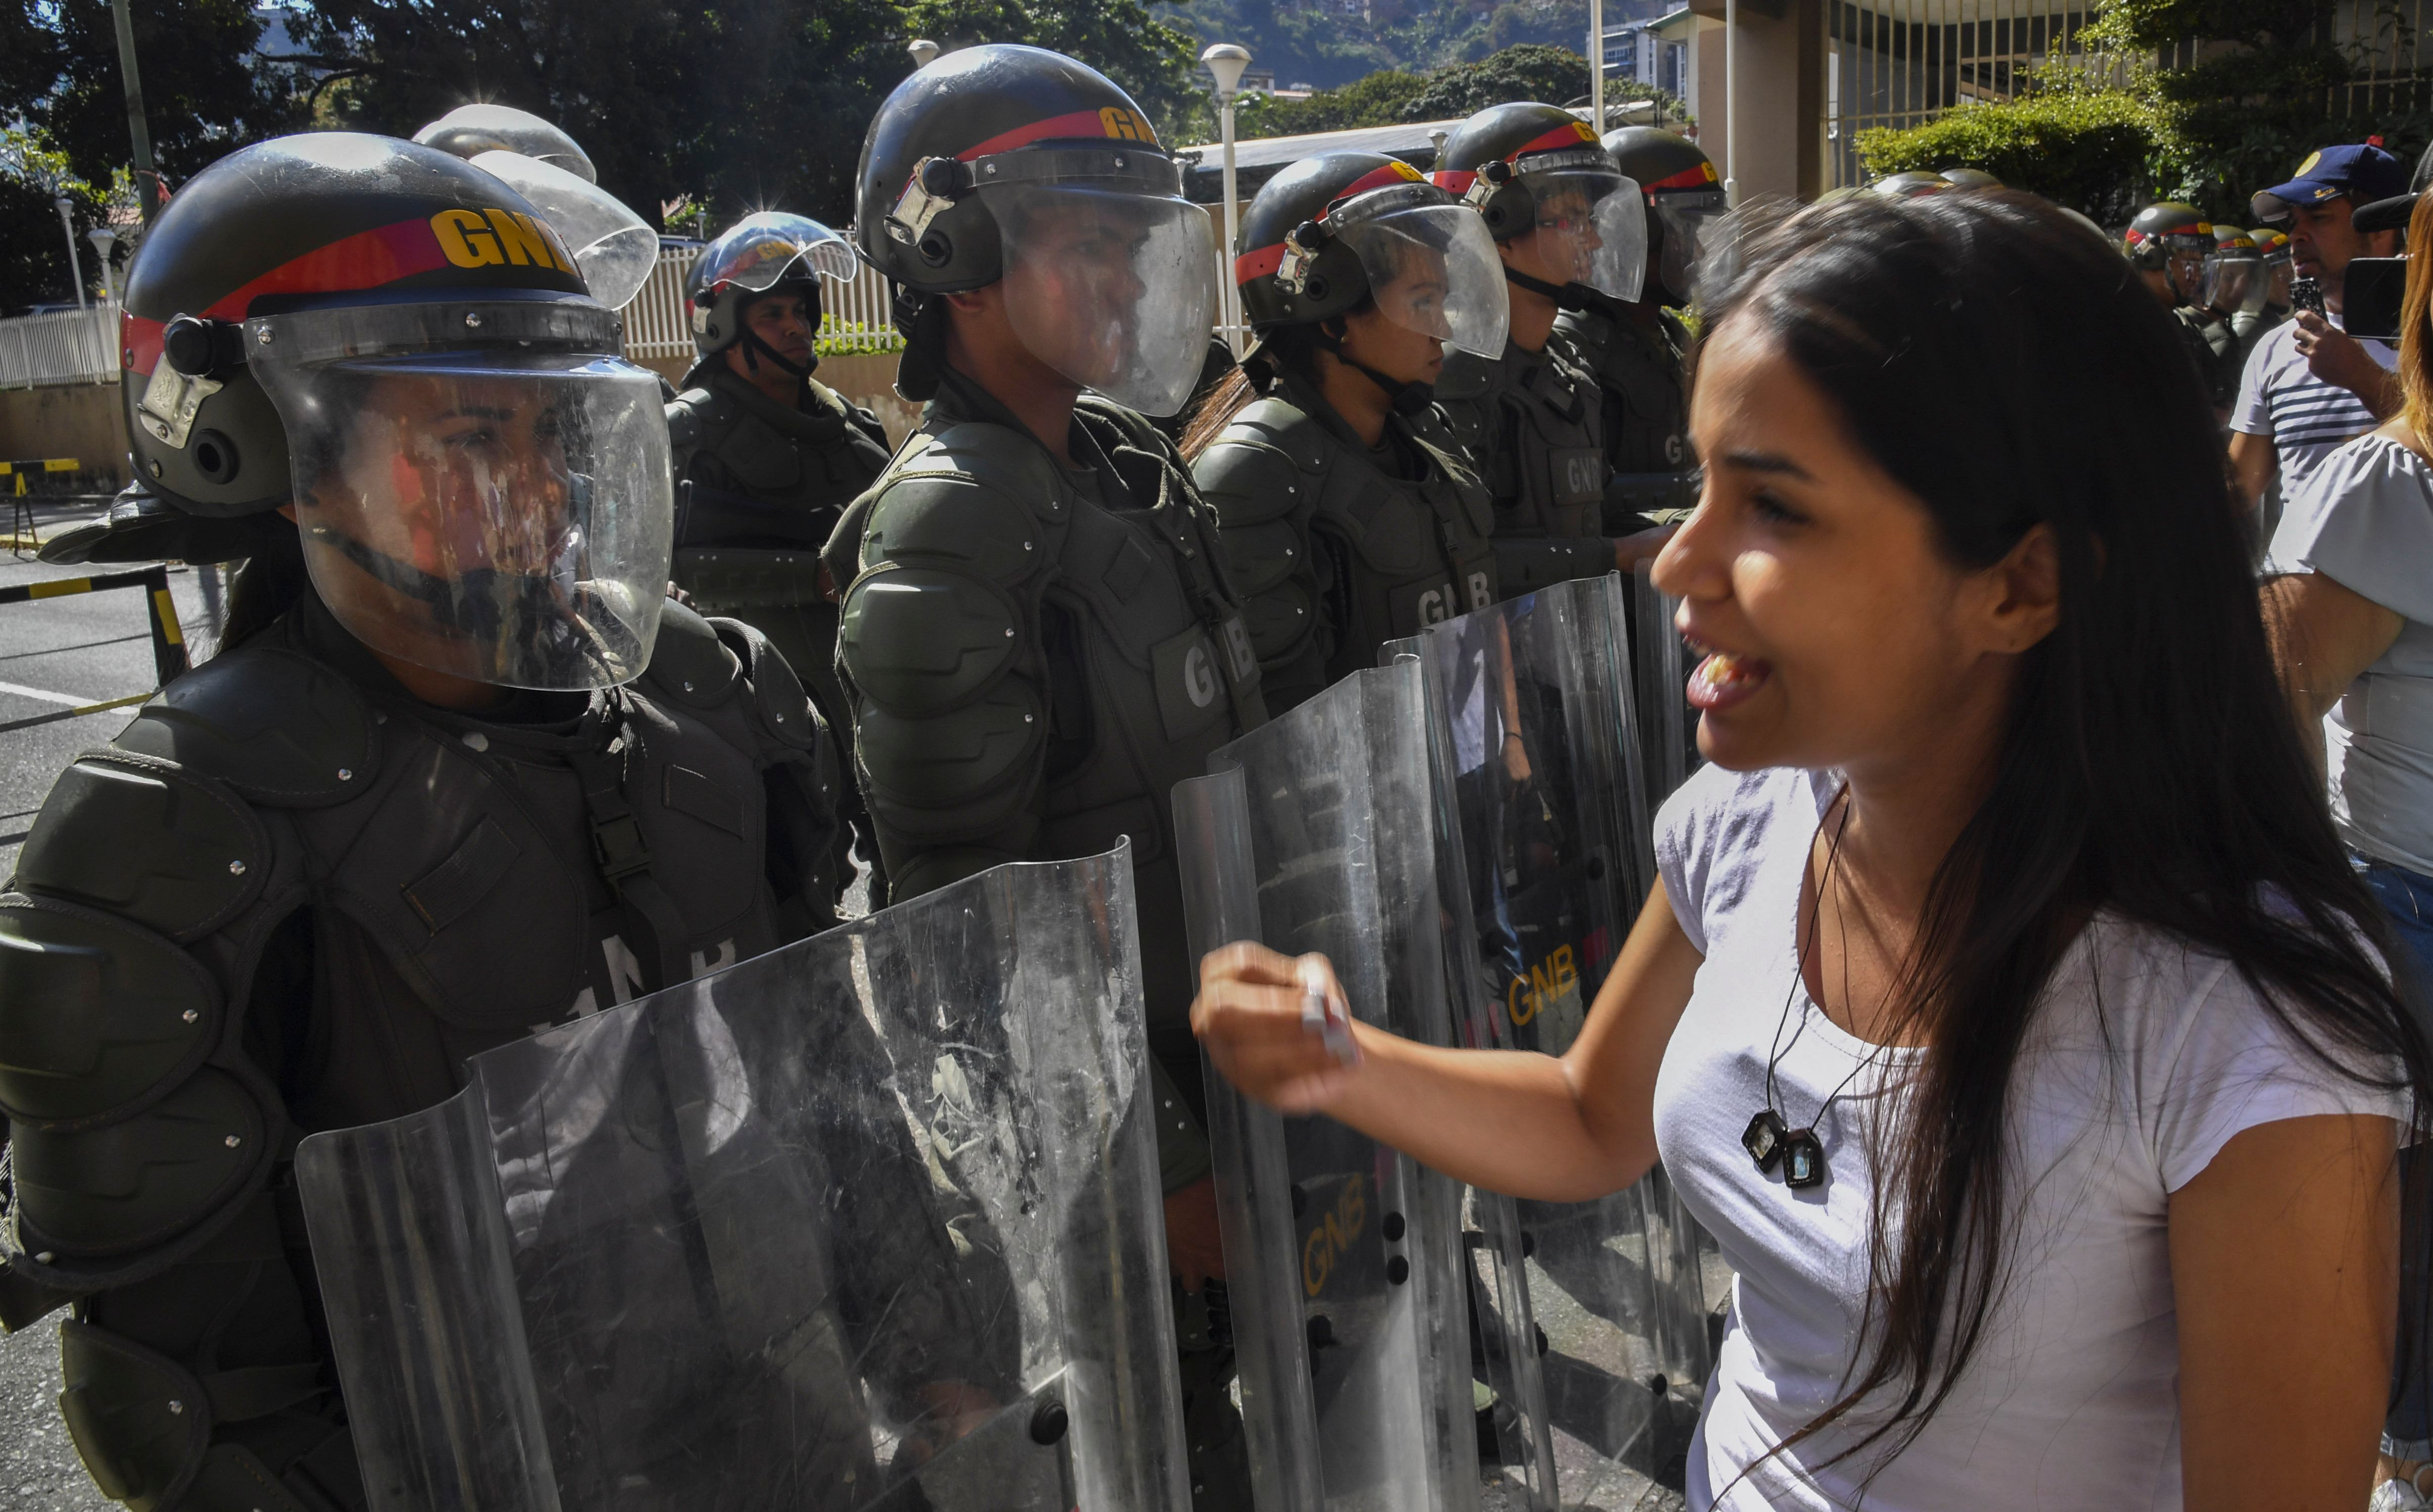 Members of the Bolivarian National Guard stand guard near the main entrance of the forces' headquarters in Caracas as supporters of Venezuela's National Assembly head and self-proclaimed acting president Juan Guaido distribute copies of amnesty measures for anyone in the military who disavows President Nicolas Maduro.